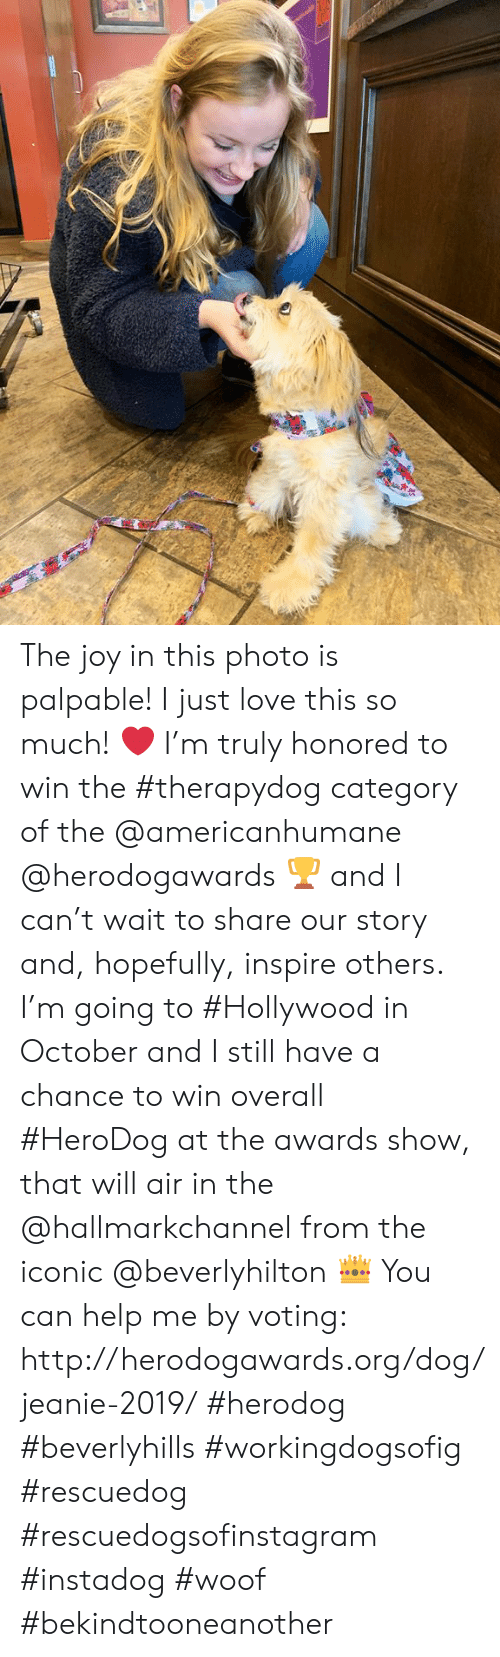 Love, Memes, and Help: The joy in this photo is palpable!  I just love this so much! ❤️    I'm truly honored to win the #therapydog category of the @americanhumane @herodogawards 🏆 and I can't wait to share our story and, hopefully, inspire others.  I'm going to #Hollywood in October and I still have a chance to win overall #HeroDog at the awards show, that will air in the @hallmarkchannel from the iconic @beverlyhilton 👑 You can help me by voting: http://herodogawards.org/dog/jeanie-2019/ #herodog #beverlyhills #workingdogsofig #rescuedog #rescuedogsofinstagram #instadog #woof #bekindtooneanother